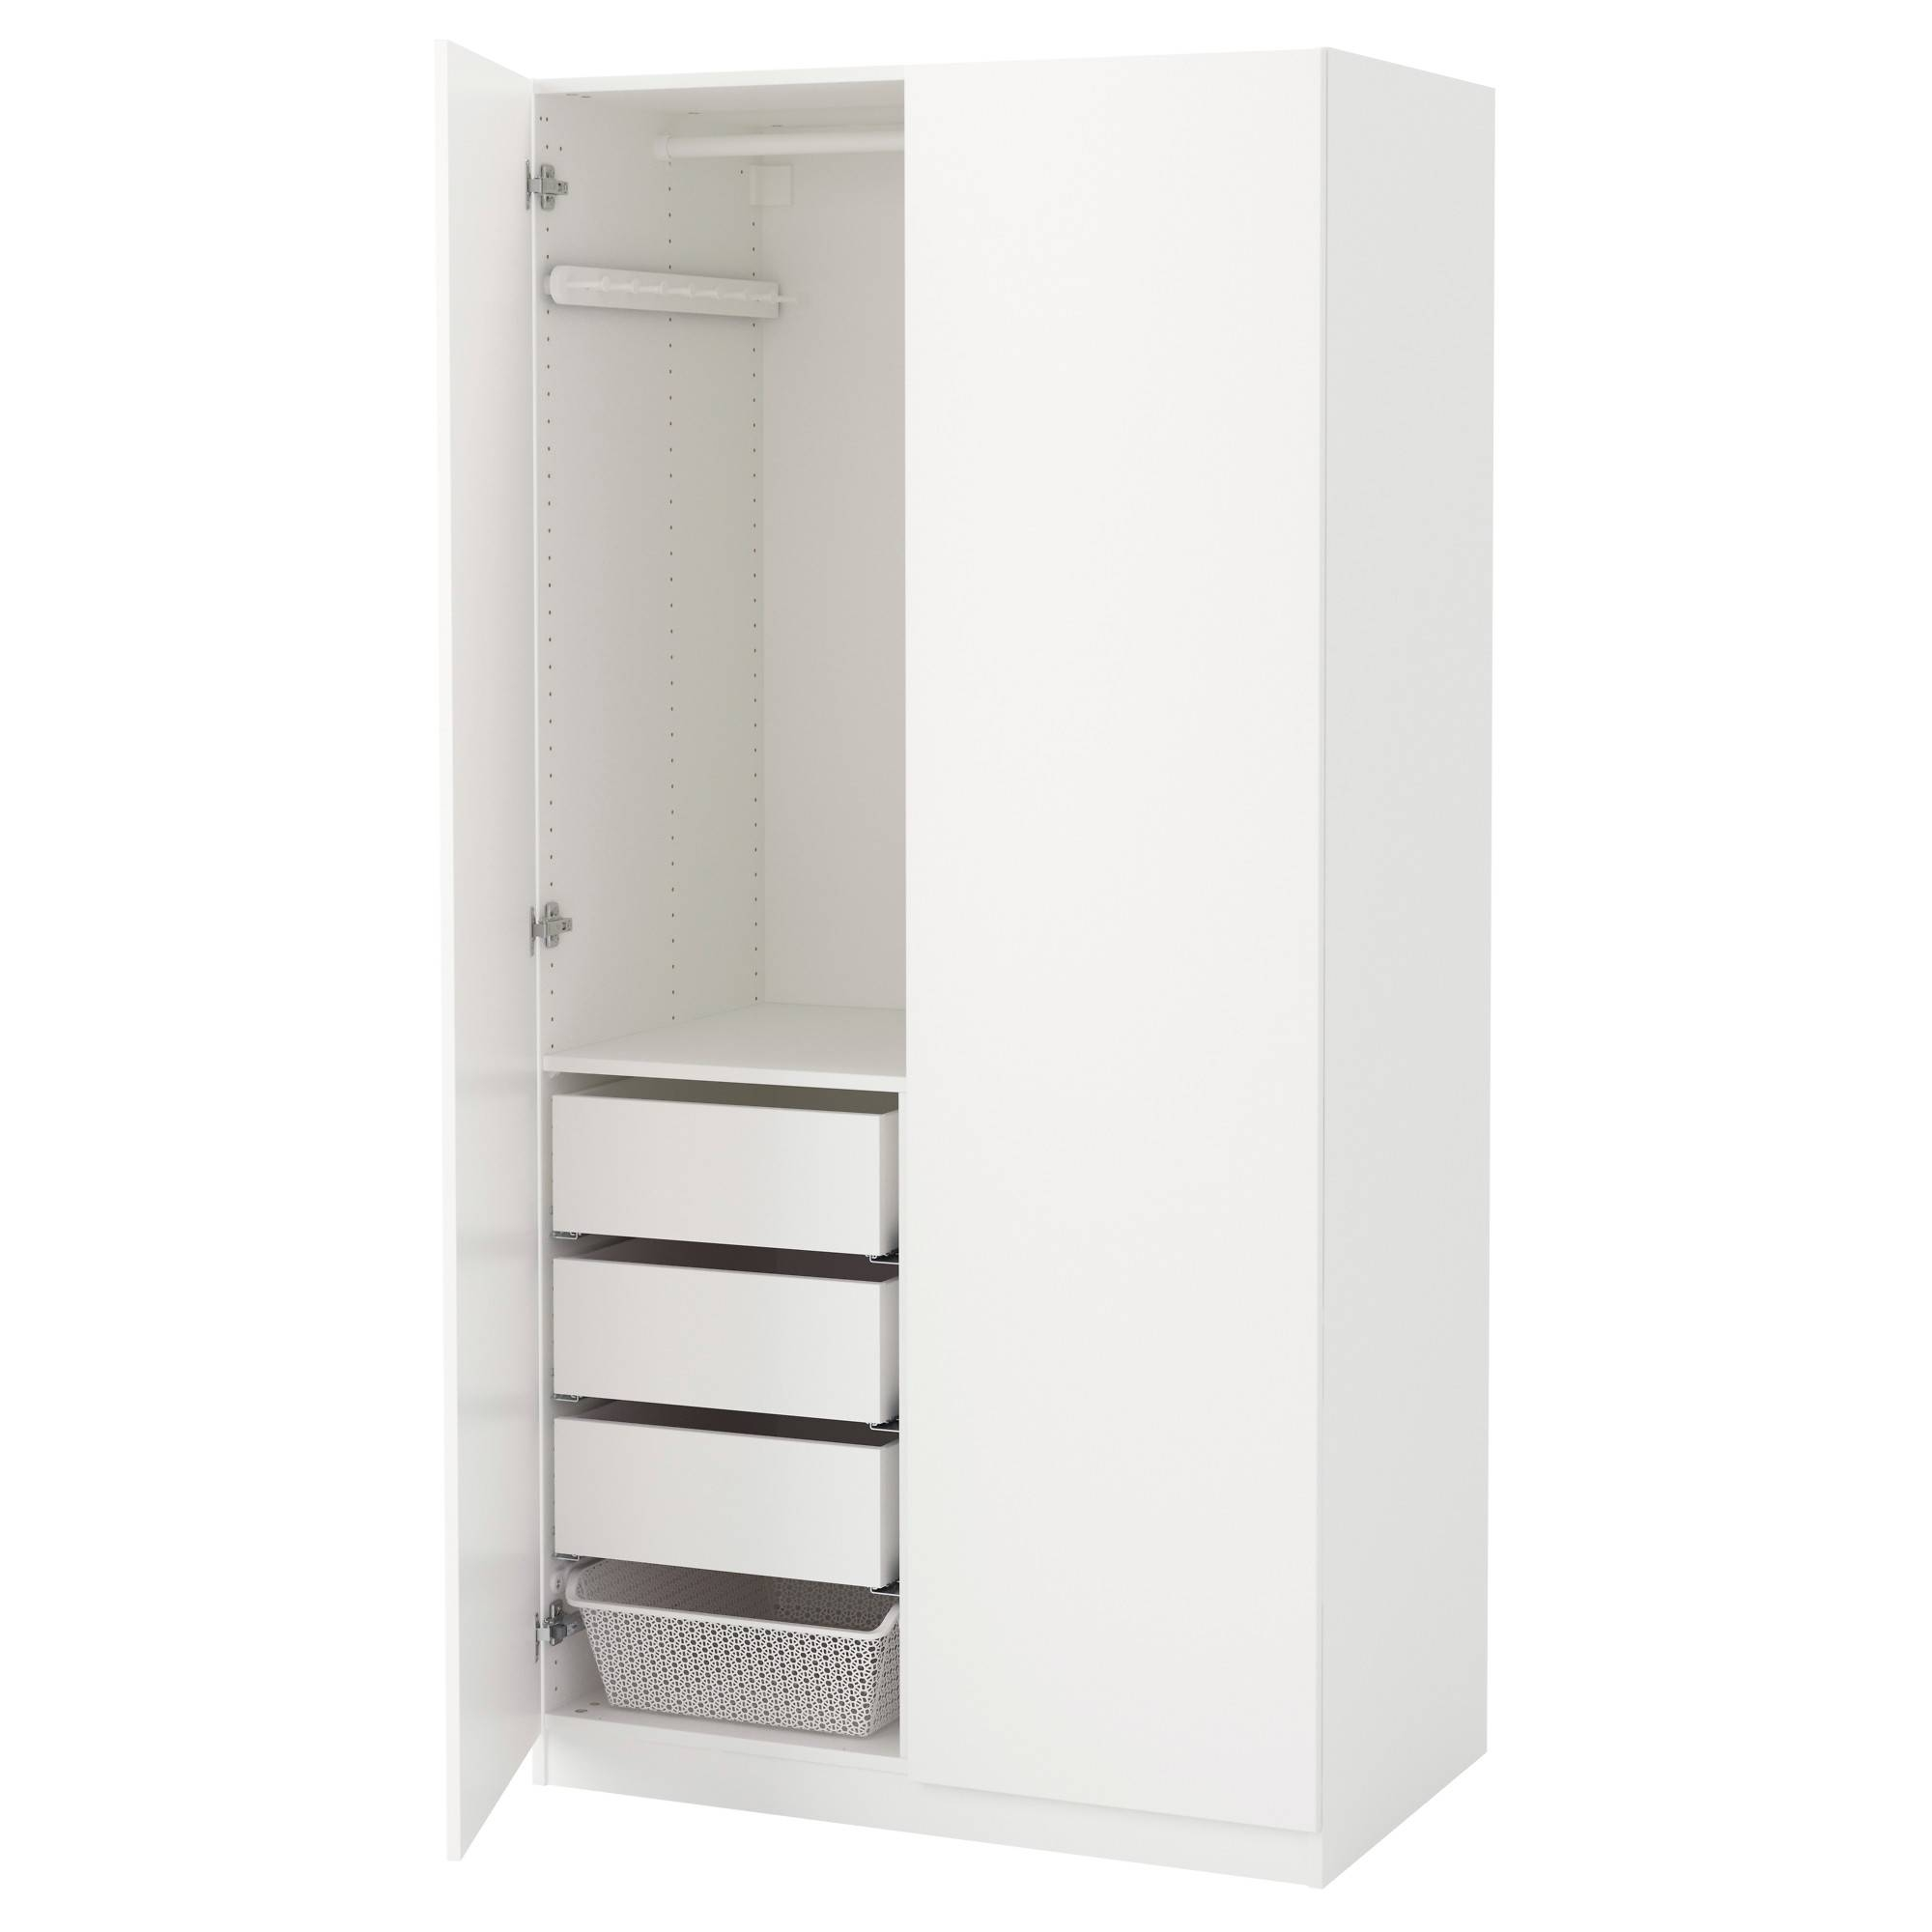 Wardrobes - Pax System - Ikea with regard to Wardrobe Drawers and Shelves Ikea (Image 26 of 30)